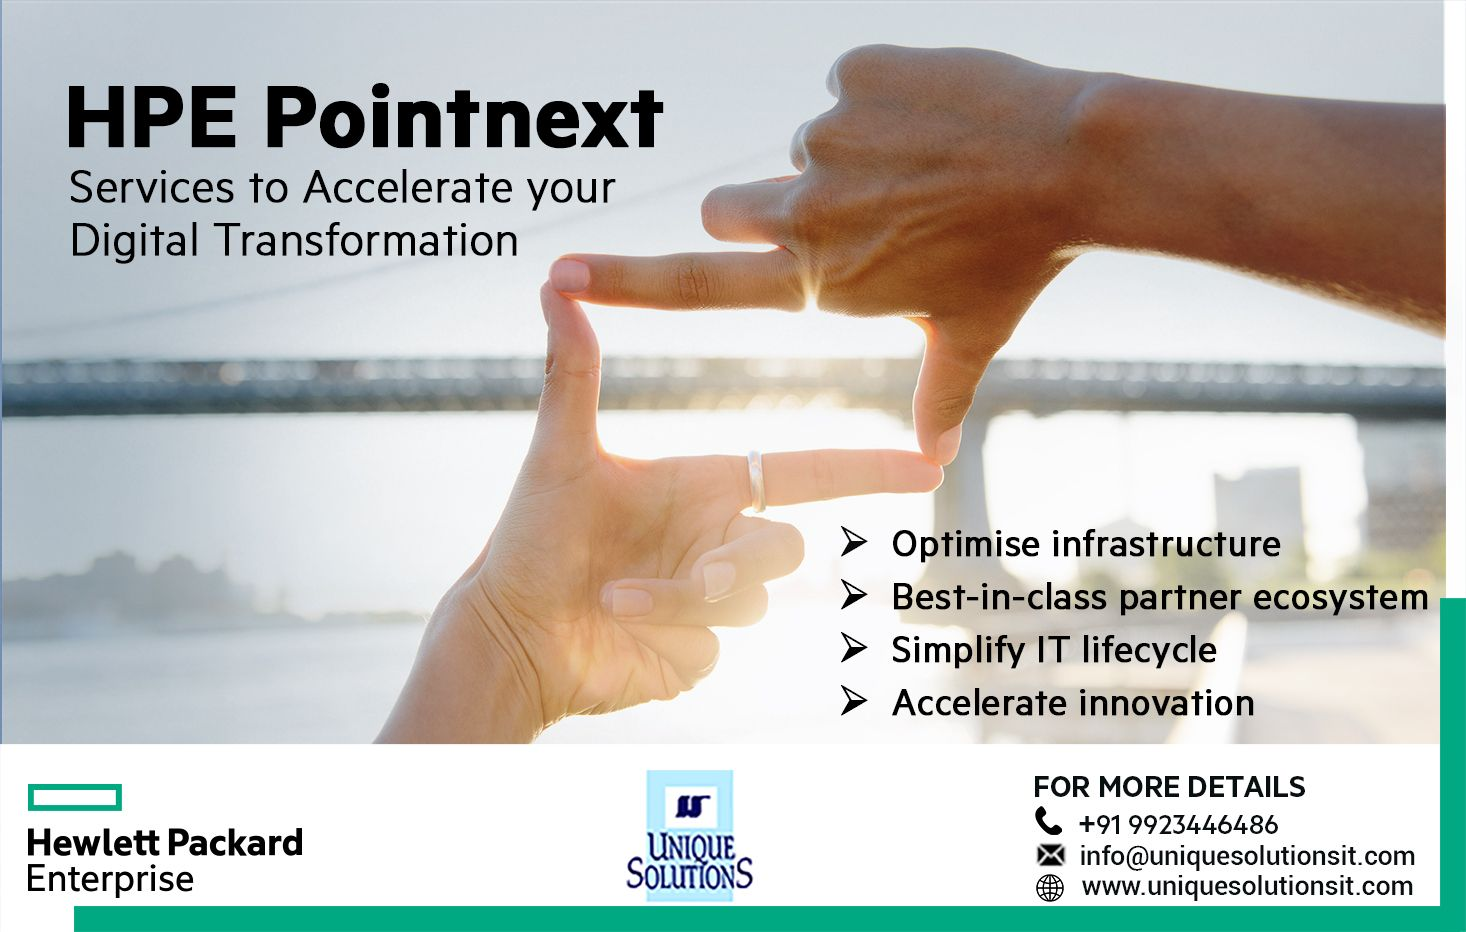 Pointnext Is A Services Organization Built For The Future To Help Customers Optimize And Leverage The Ideal Digital Transformation Infrastructure Acceleration